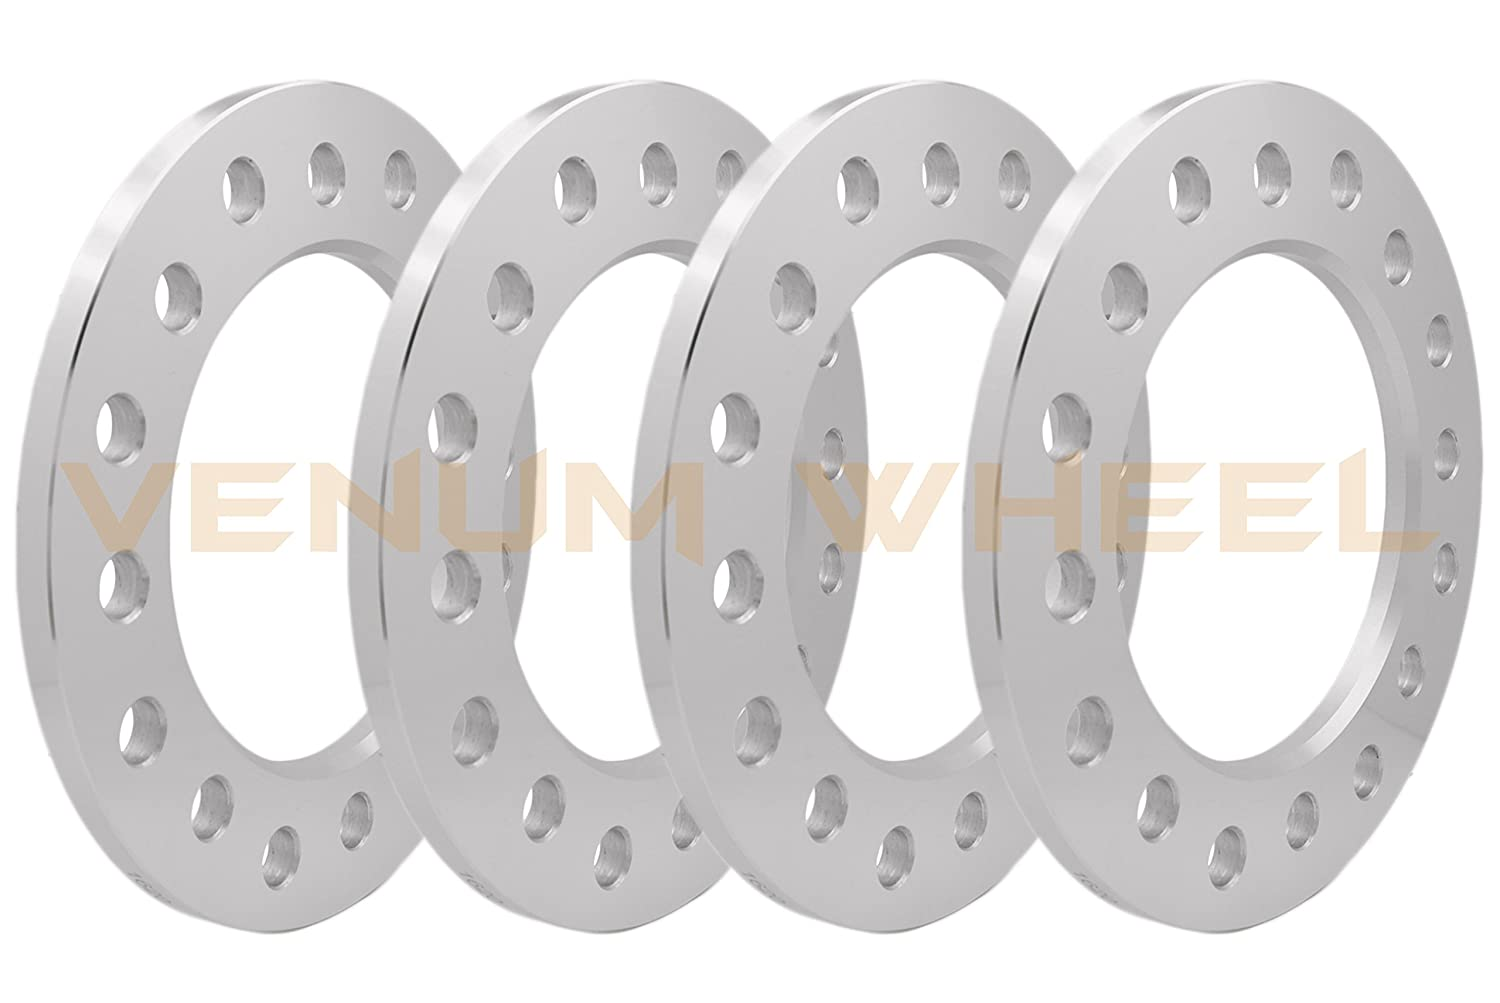 Thread Locking for Vibration Resistance Integrated Washer to Help Spread Clamp Load Pack of 20 Black Phosphate Finish for Corrosion Protection 5//8-11 GILLIEM Top Lock Flange Nuts